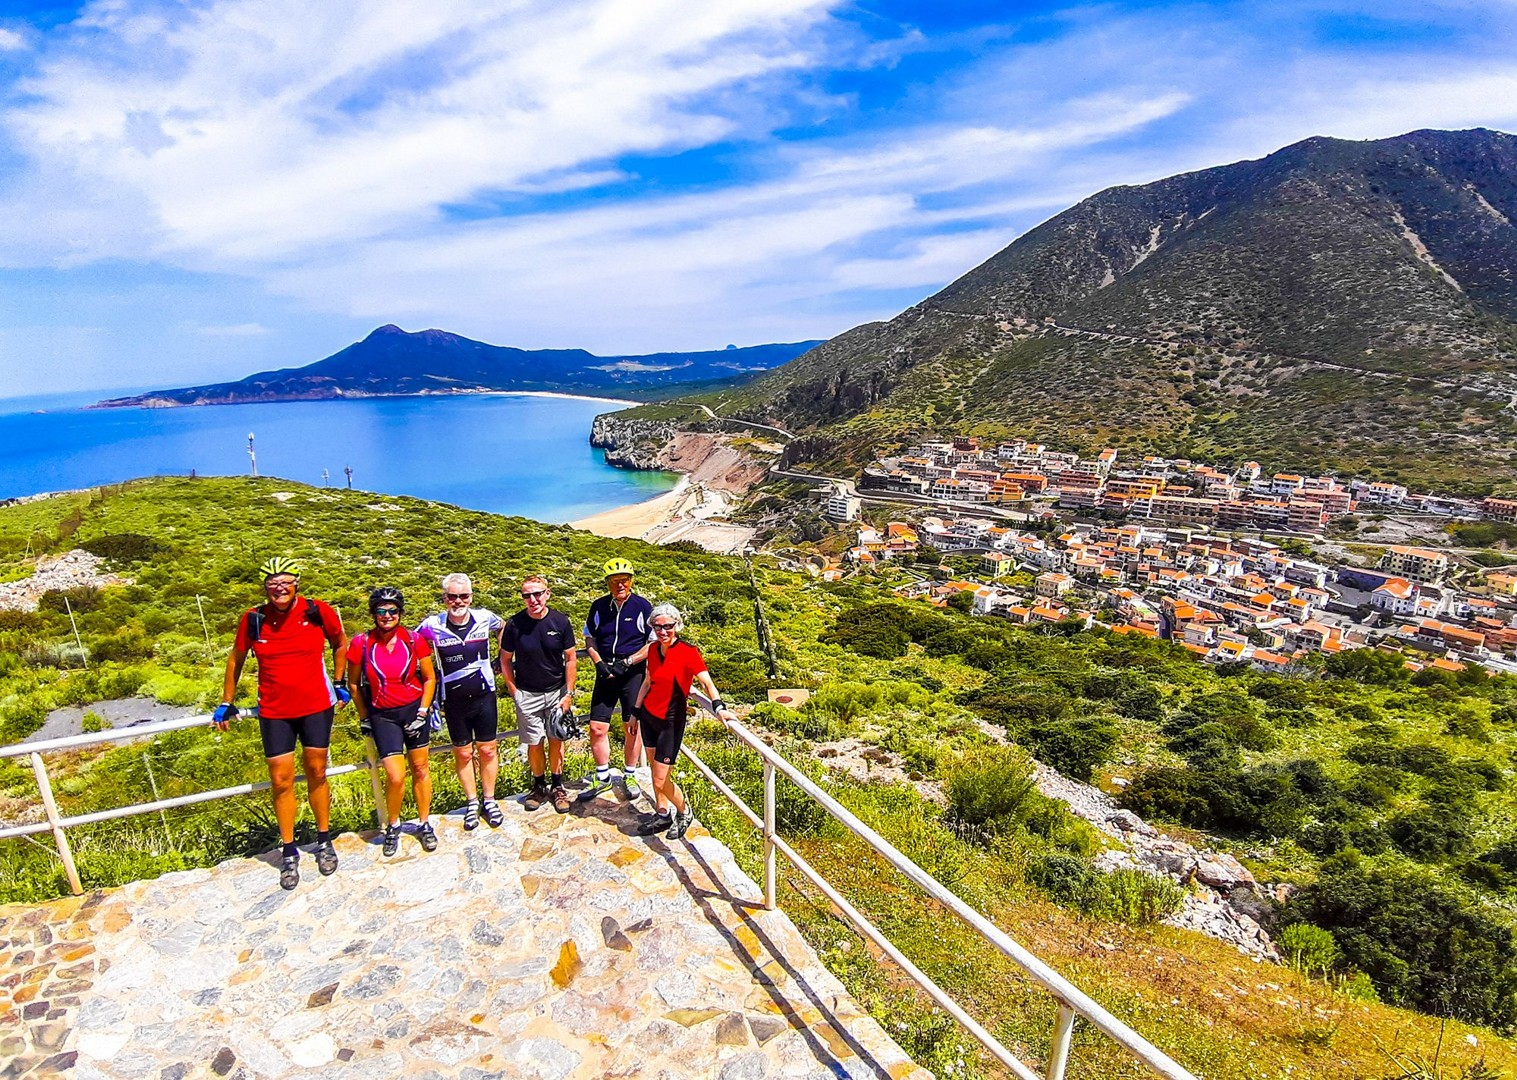 20190508_121733.jpg - Italy - Sardinia - Island Flavours - Guided Leisure Cycling Holiday - Leisure Cycling